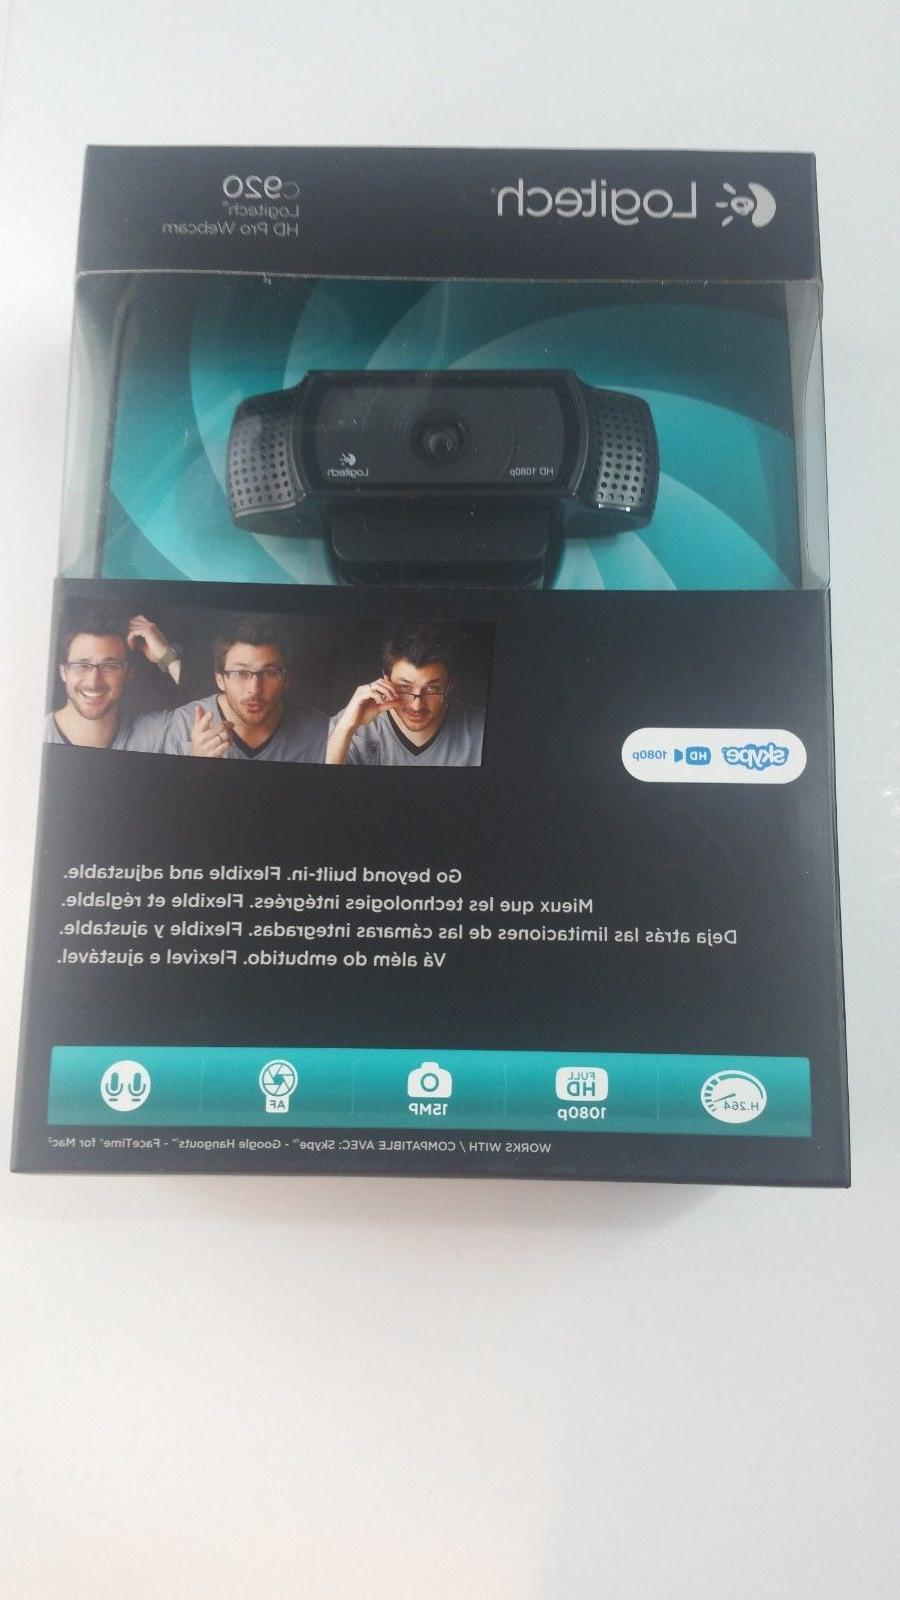 new hd pro webcam c920 widescreen video